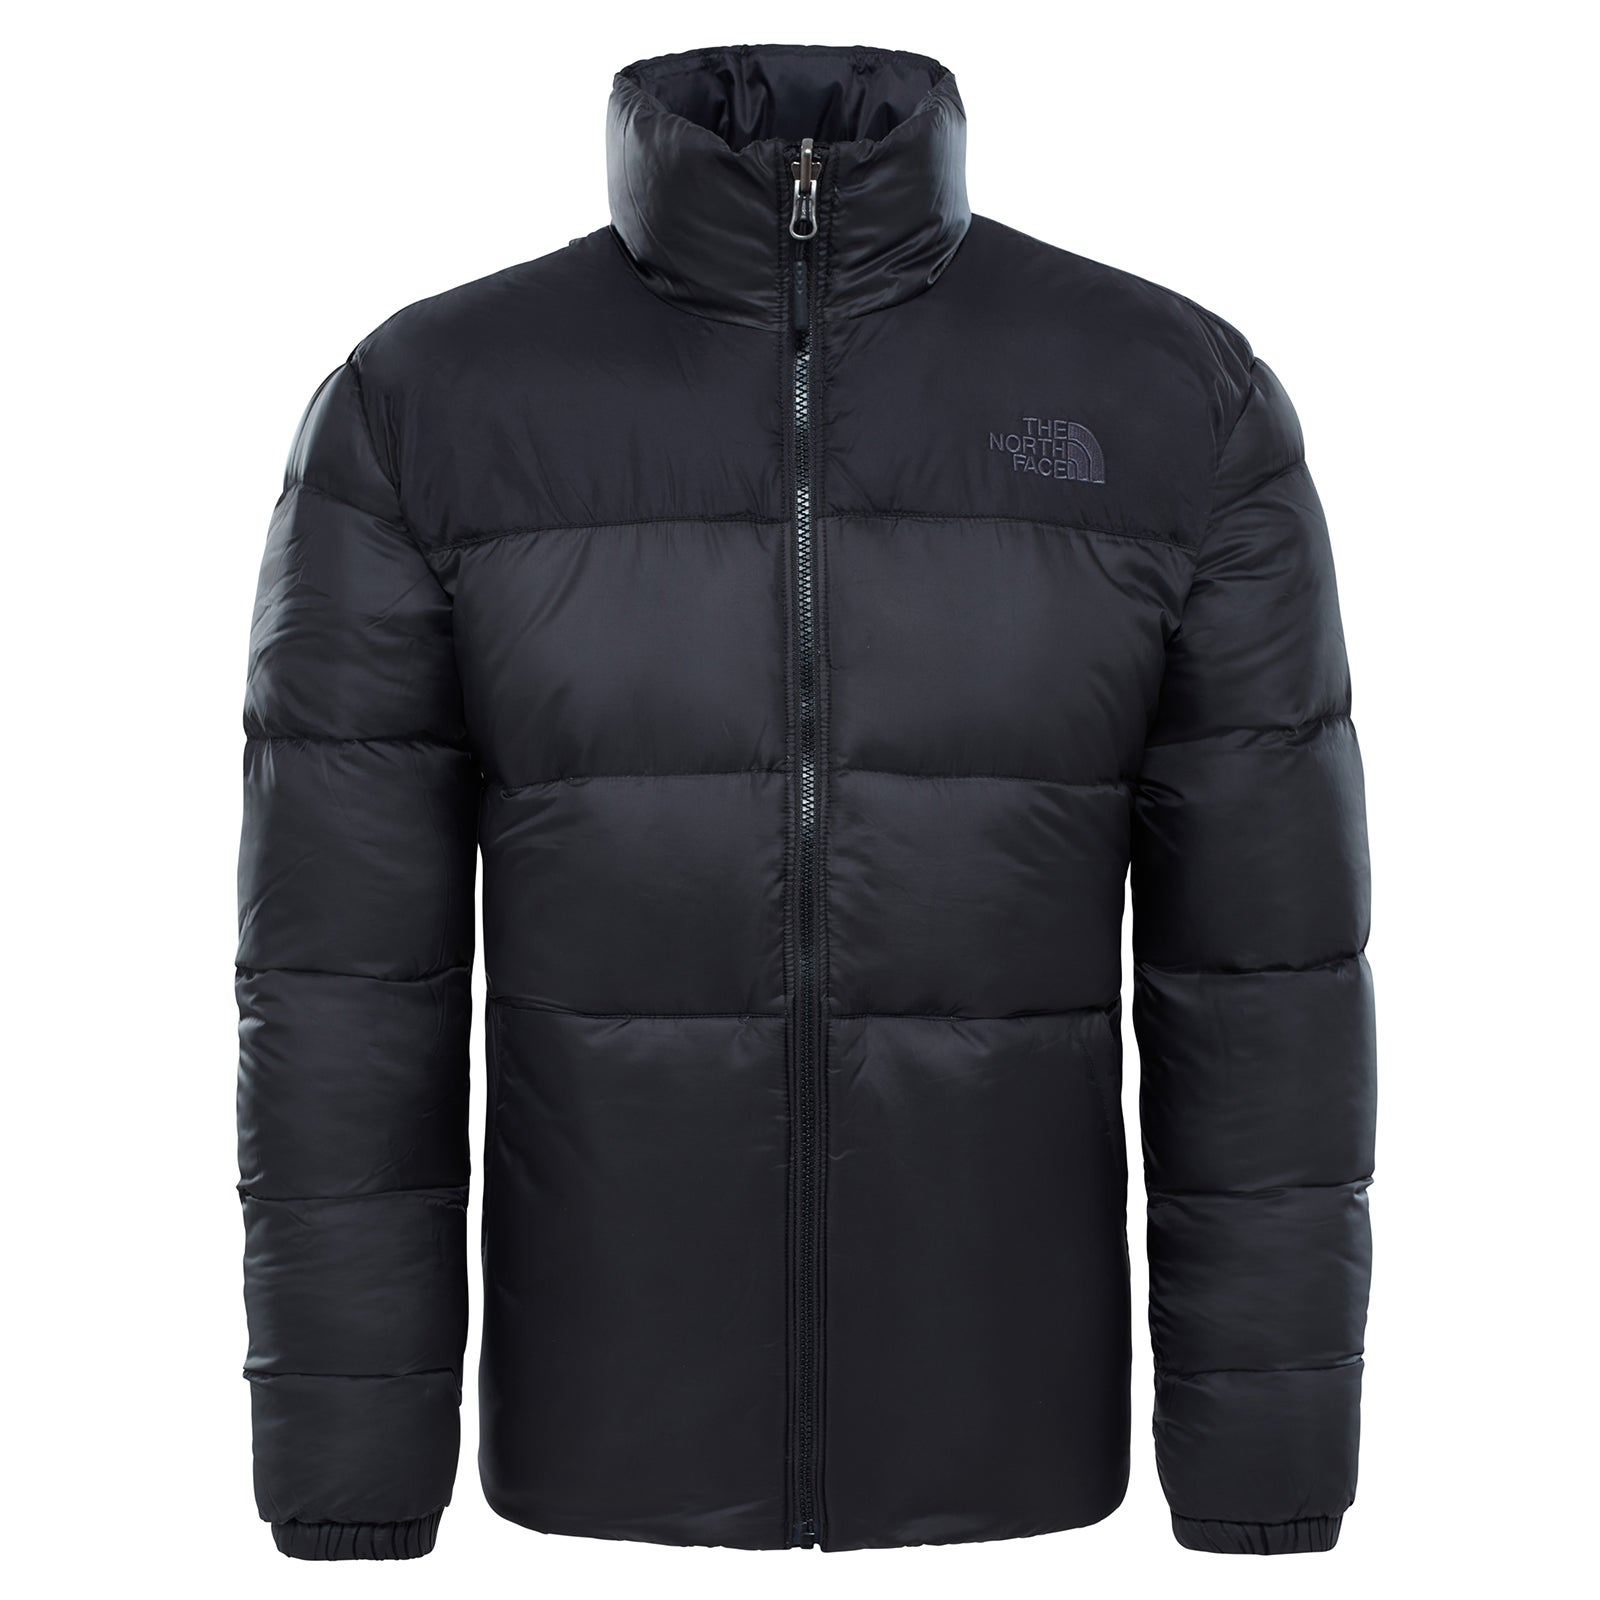 099c501bd5 The North Face Nuptse Iii Mens Jacket Down - Tnf Black All Sizes